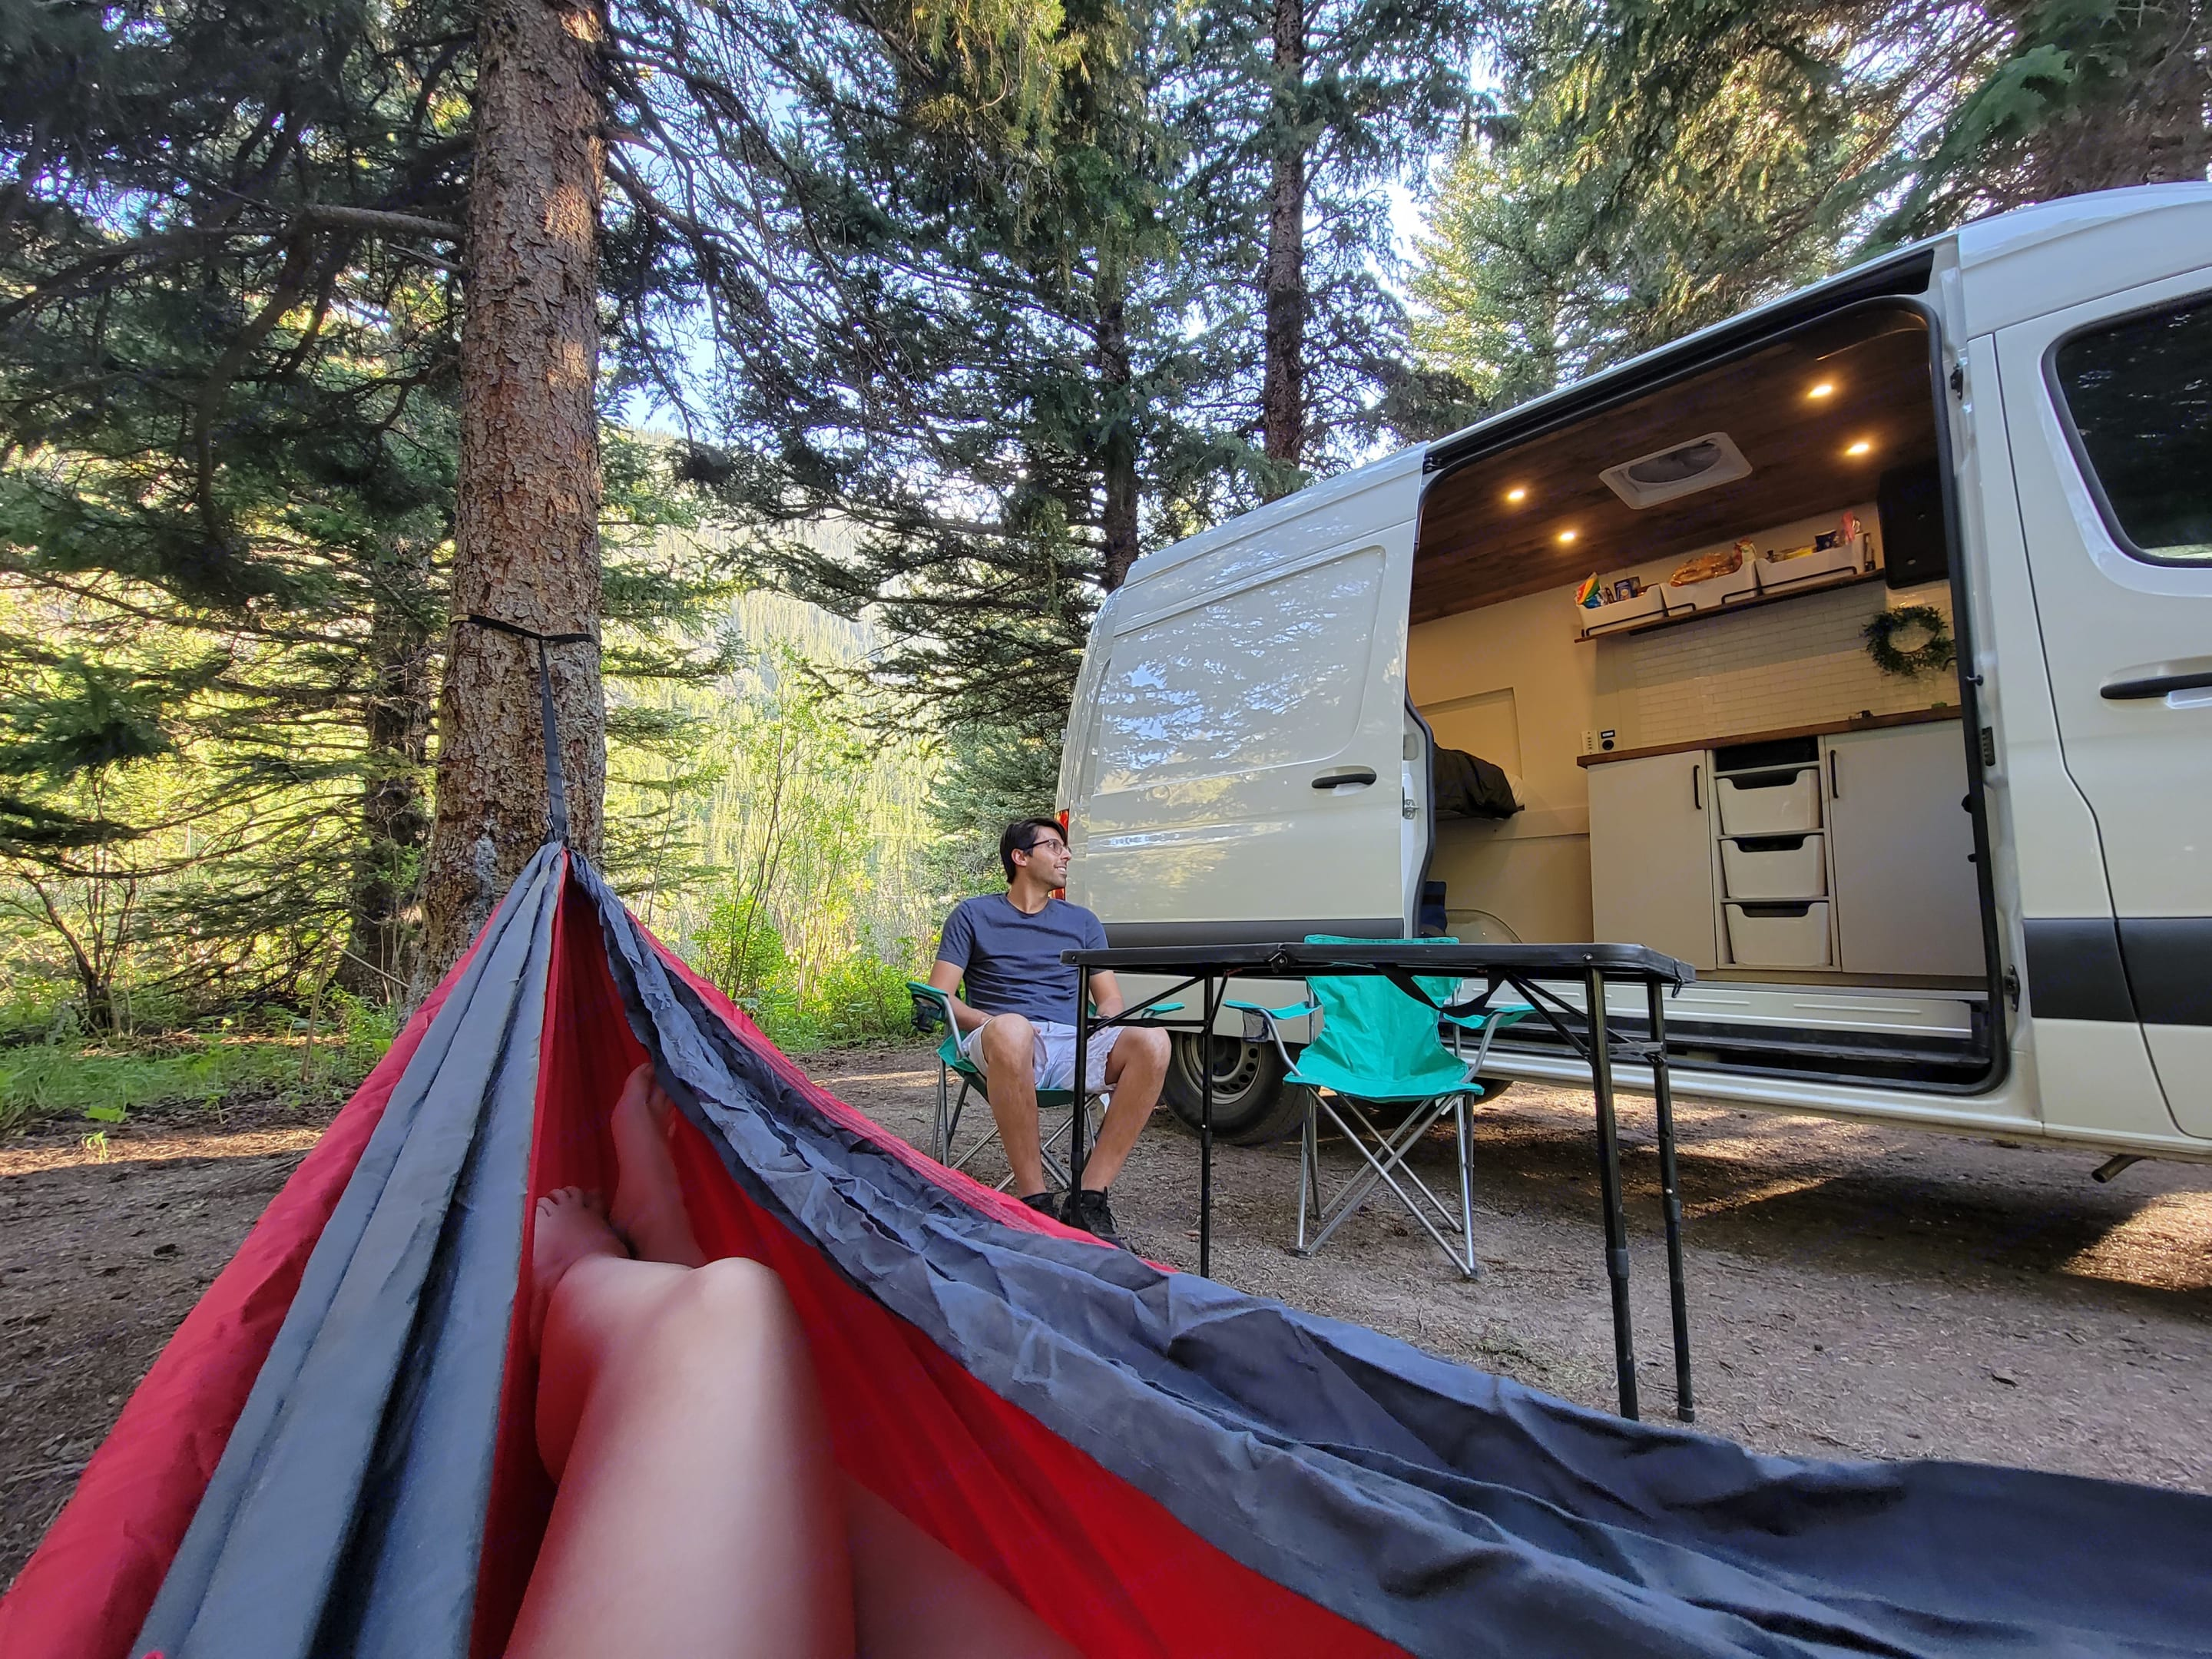 Nothing like relaxing in the woods WITH a campervan. . Mercedes-Benz Sprinter 2020